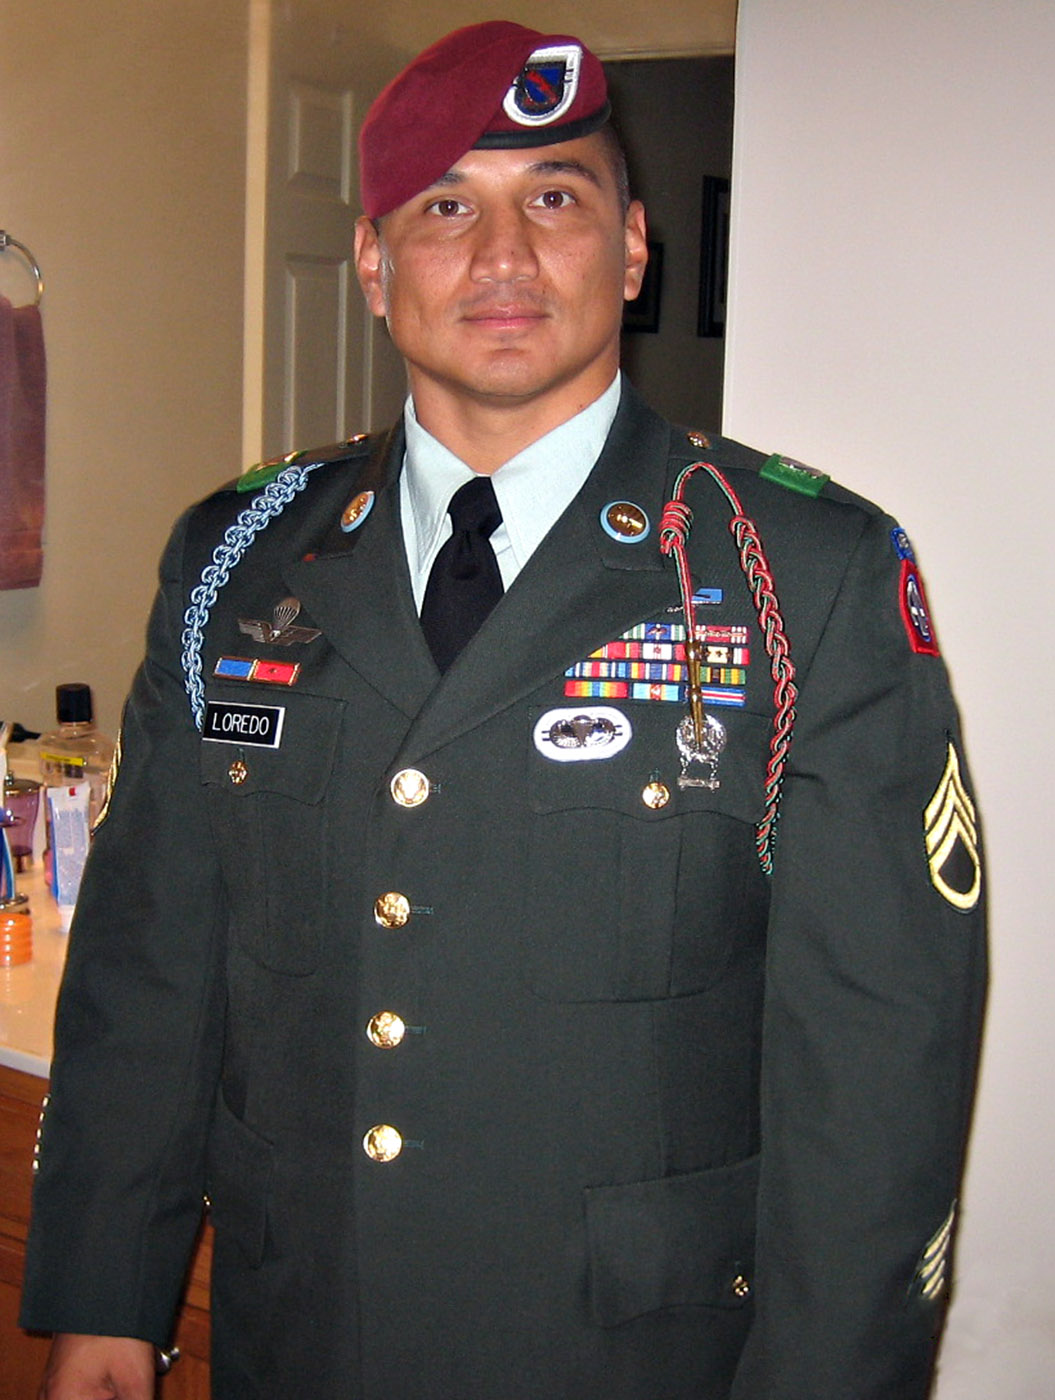 U.S. Army Staff Sergeant Edwardo Loredo, 34, of Houston, Texas, assigned to the 2nd Battalion, 508th Parachute Infantry Regiment, 4th Brigade Combat Team, 82nd Airborne Division, based in Fort Bragg, North Carolina, was killed on June 24, 2010 in Jelewar, Afghanistan, when insurgents attacked his unit with an improvised explosive device. He is survived by his wife, First Sergeant Jennifer Loredo; his daughter, Laura Isabelle; his stepdaughter, Alexis; and his son, Eduardo Enrique.